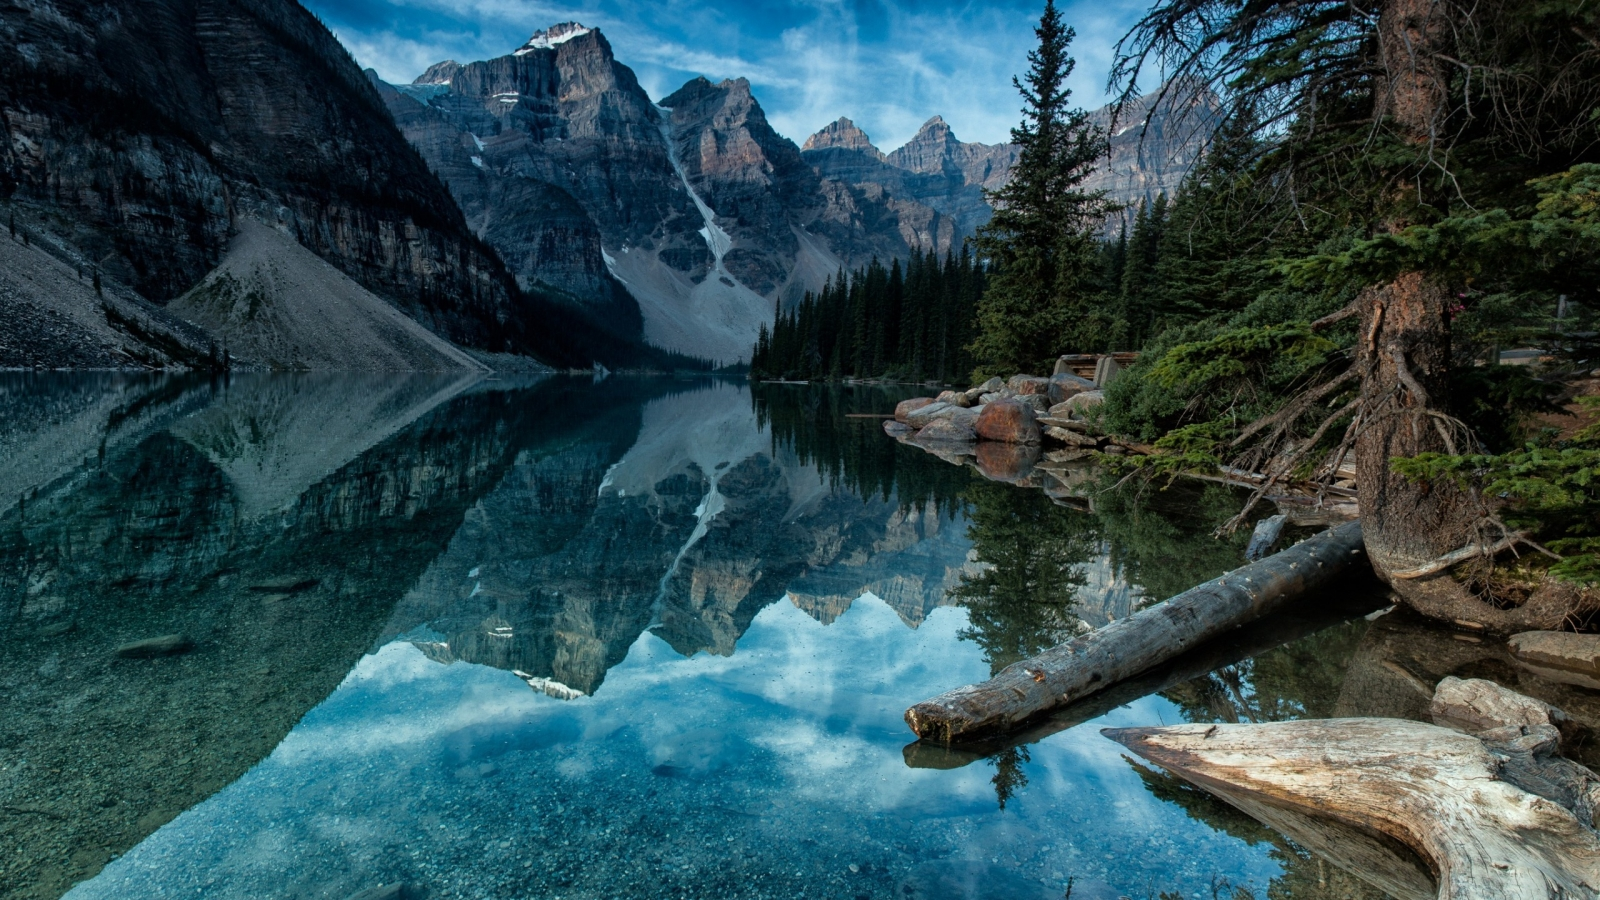 Moraine Lake Alberta Canada for 1600 x 900 HDTV resolution